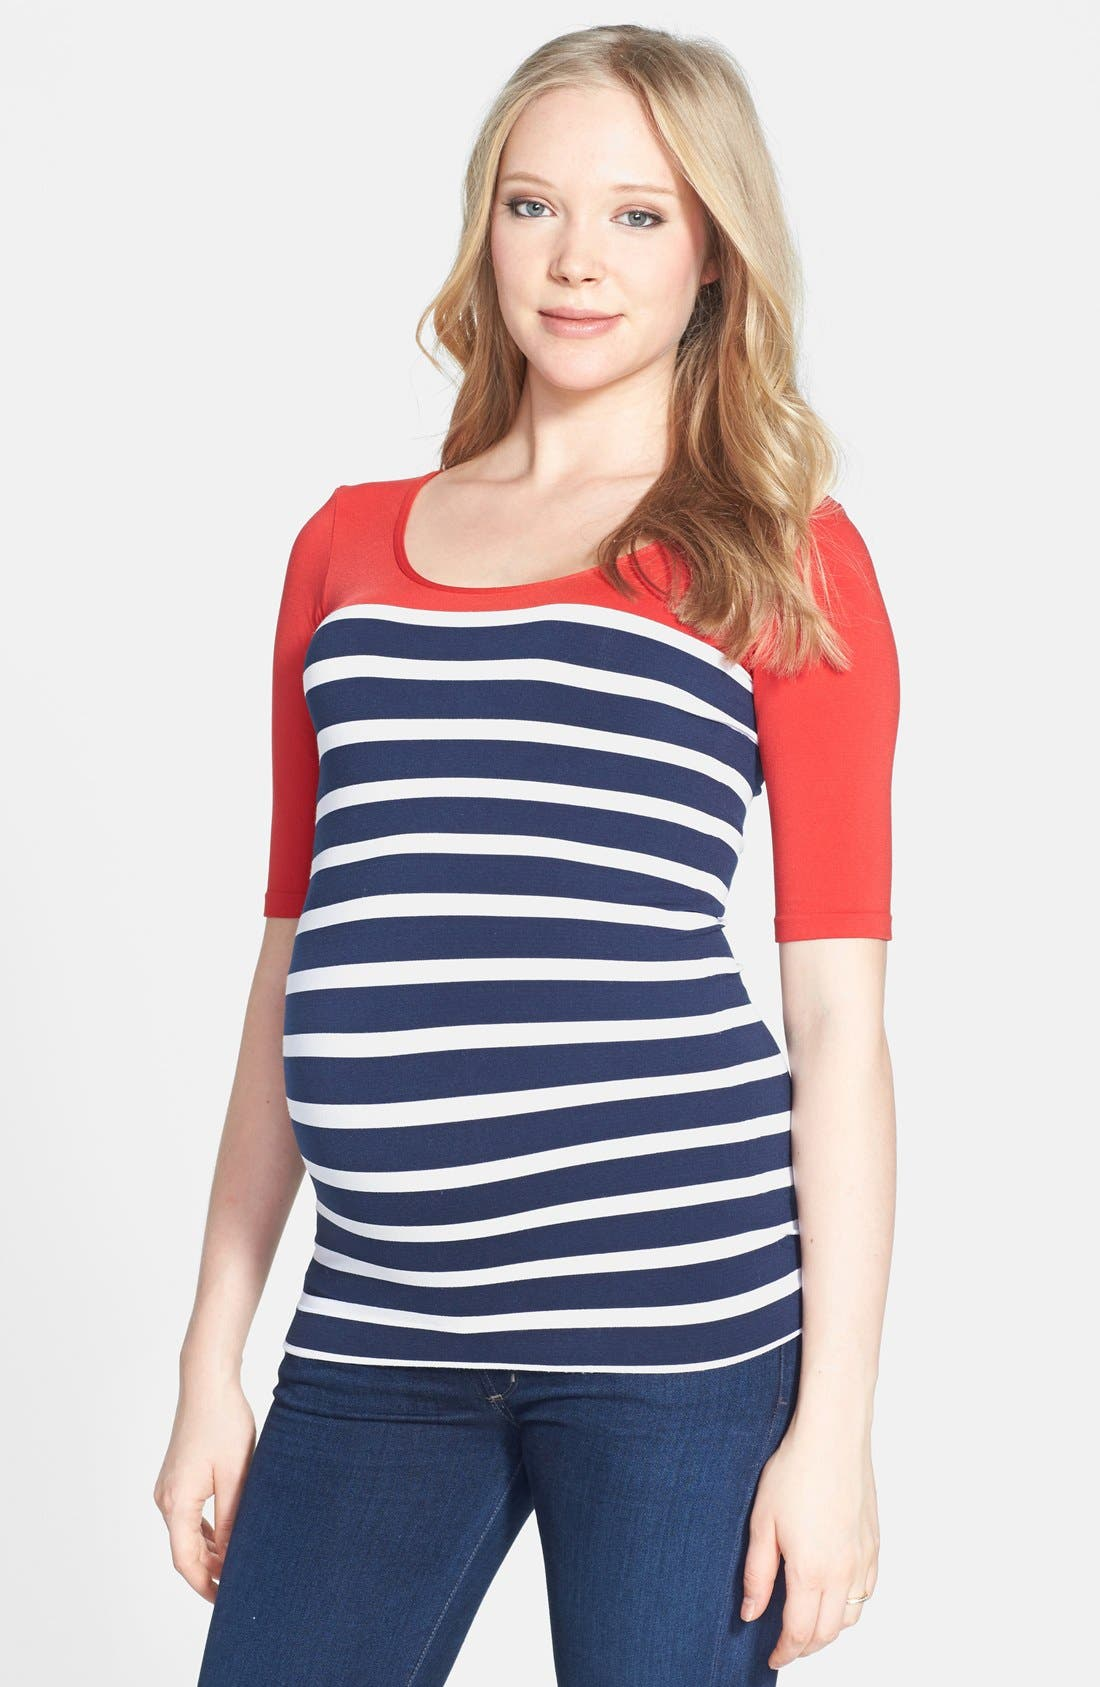 'st. Barts' Ballet Sleeve Maternity Top by Tees By Tina